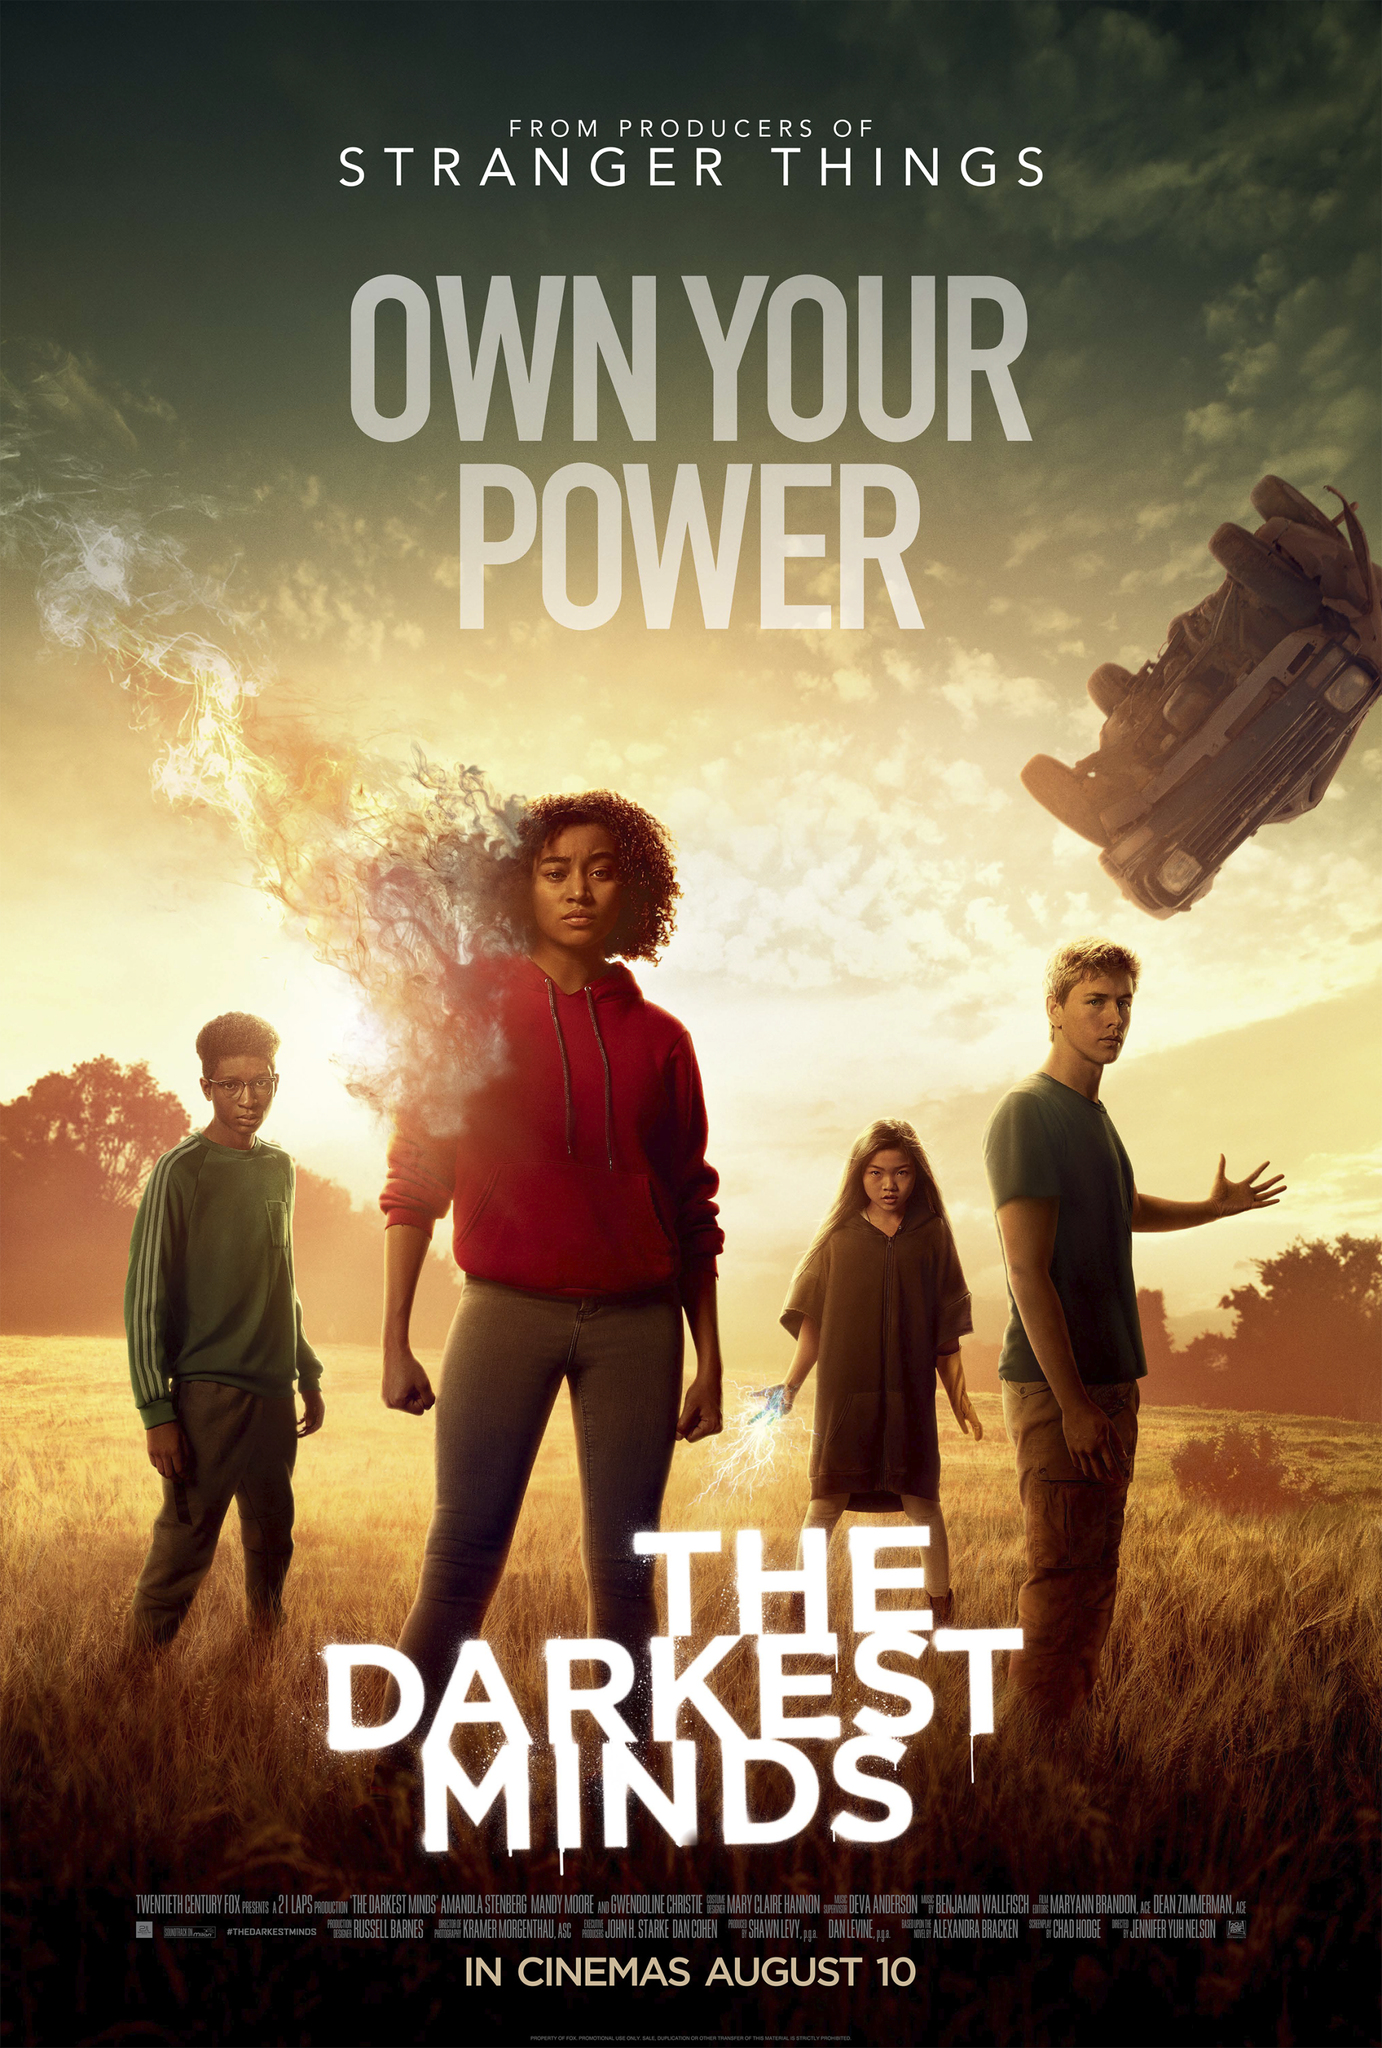 The Darkest Minds film review: the next generation rise up